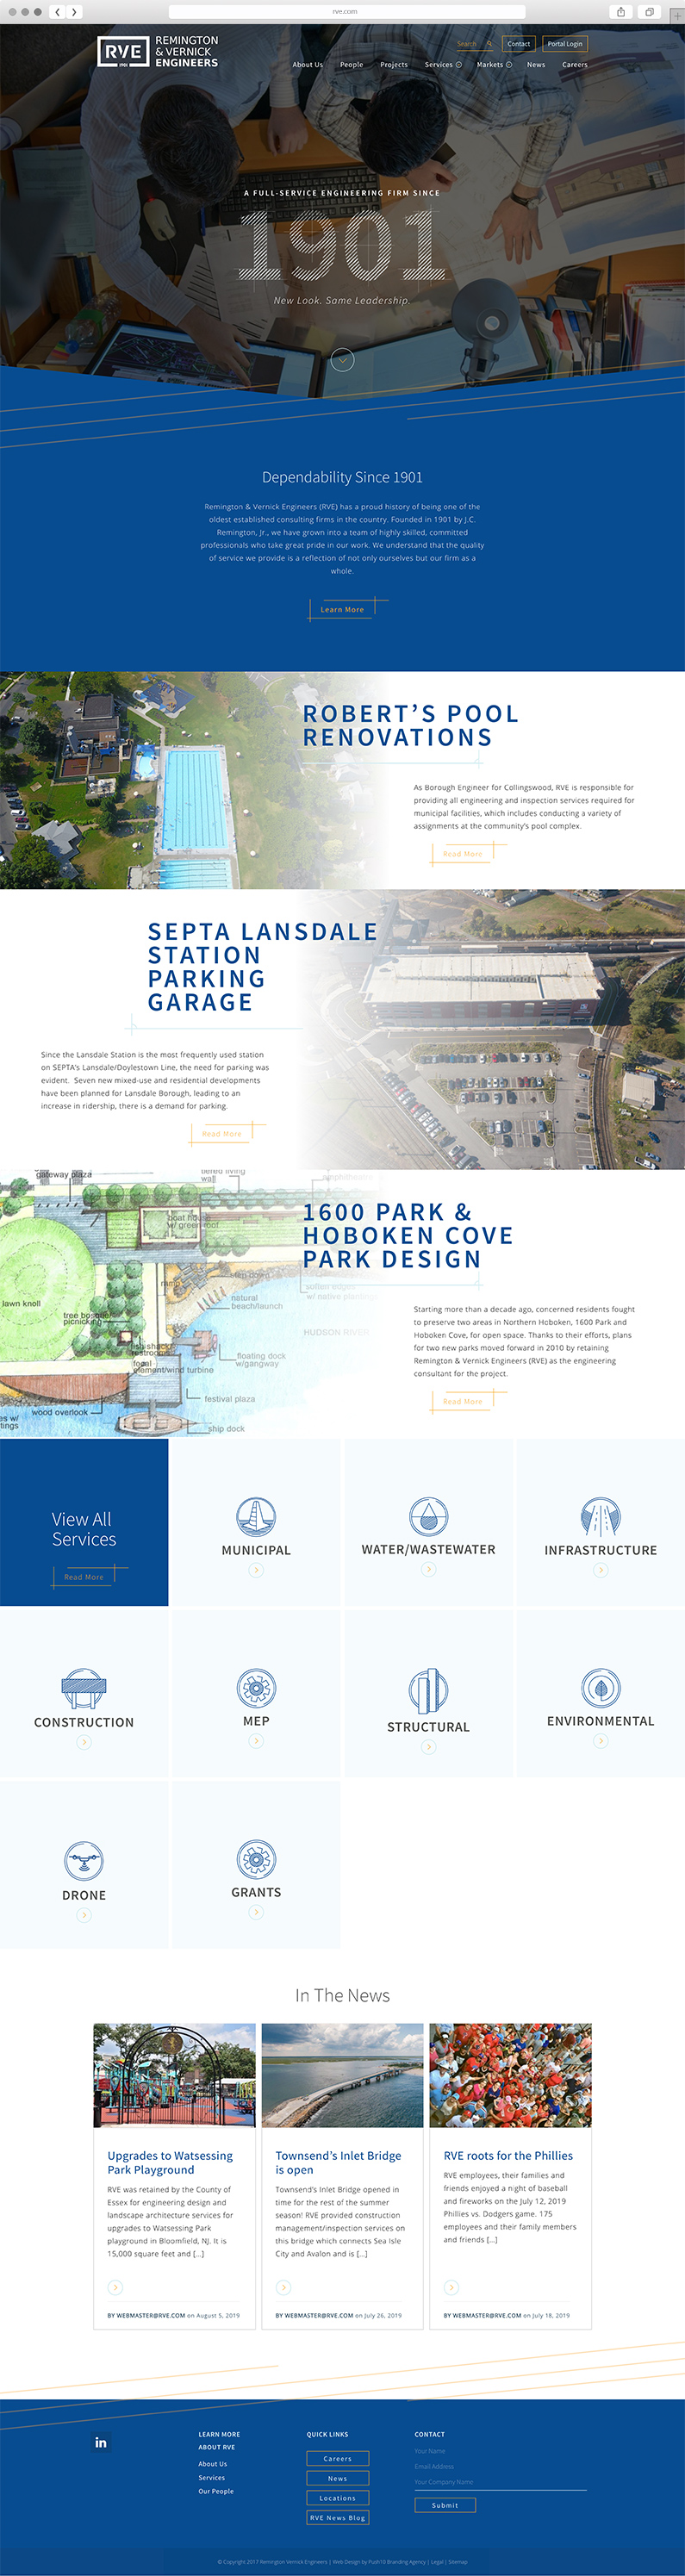 UX and UI design for Remington & Vernick Engineers, a Philadelphia-based engineering firm